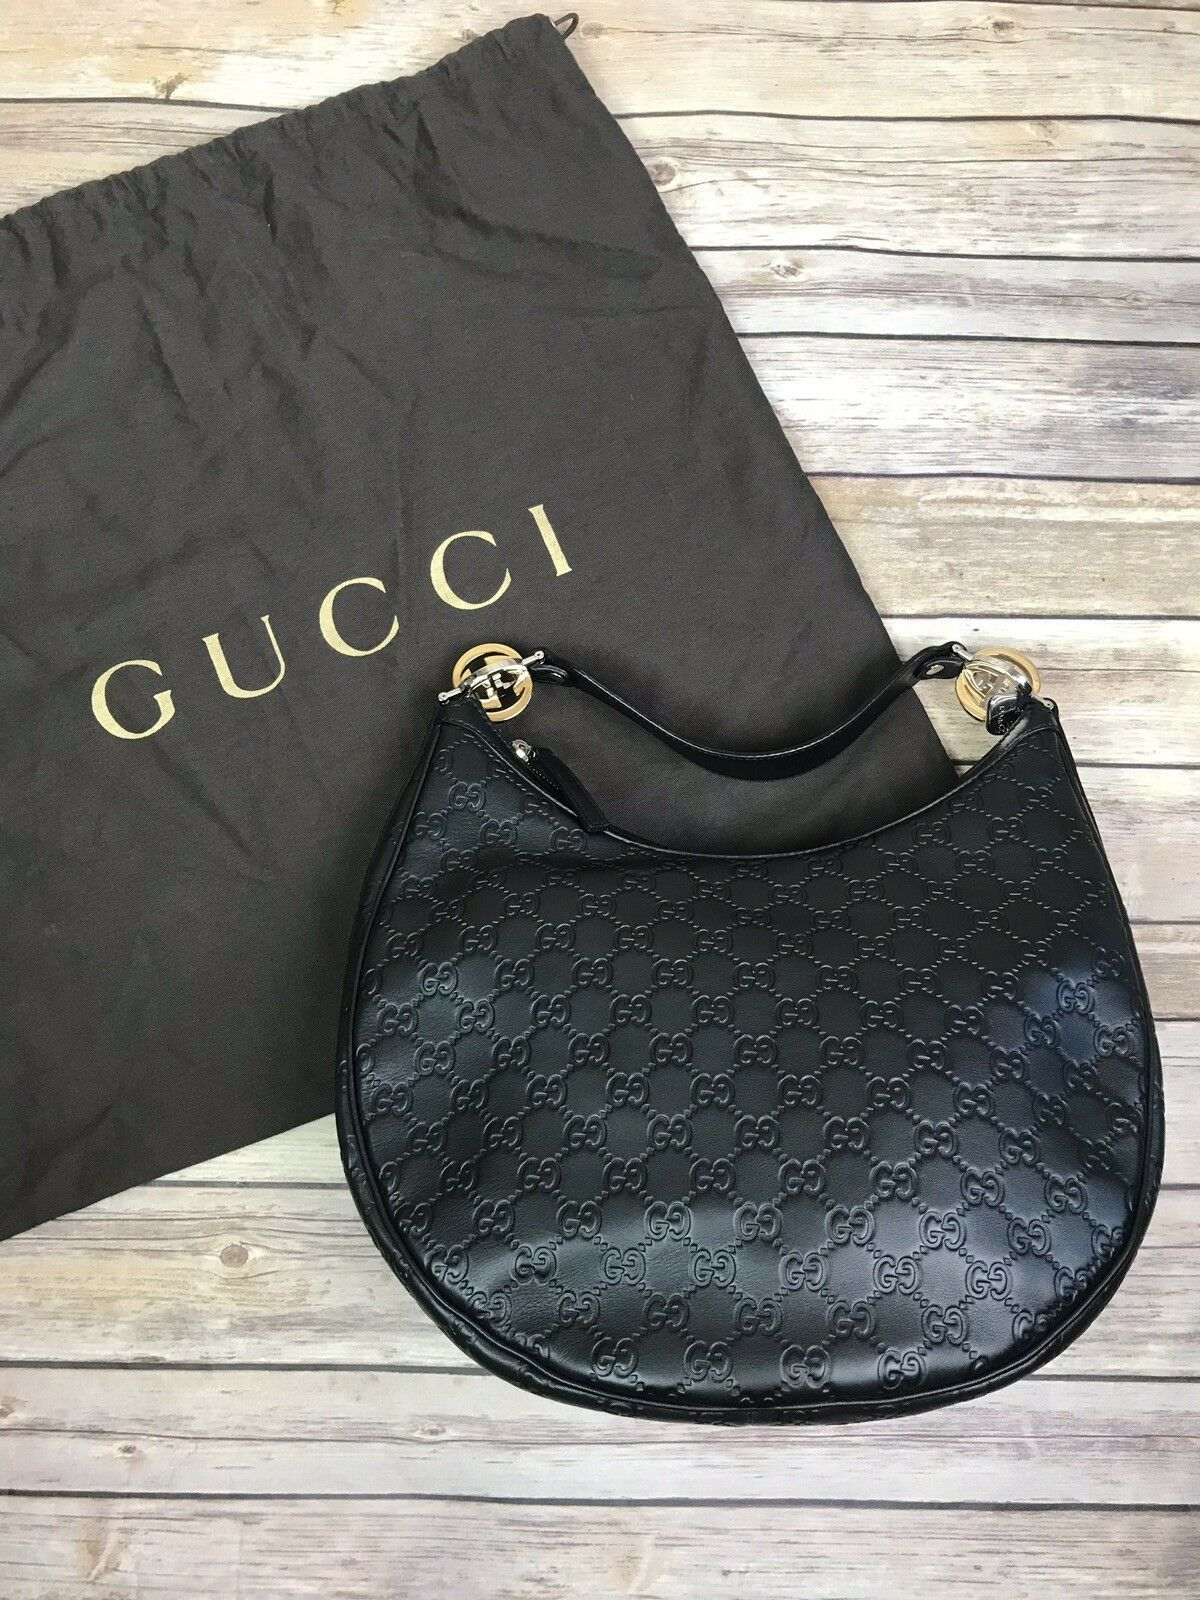 21937cdba1b6 NWOT Gucci Black Guccissima GG Twins Large Hobo Bag | Bag in 2019 ...